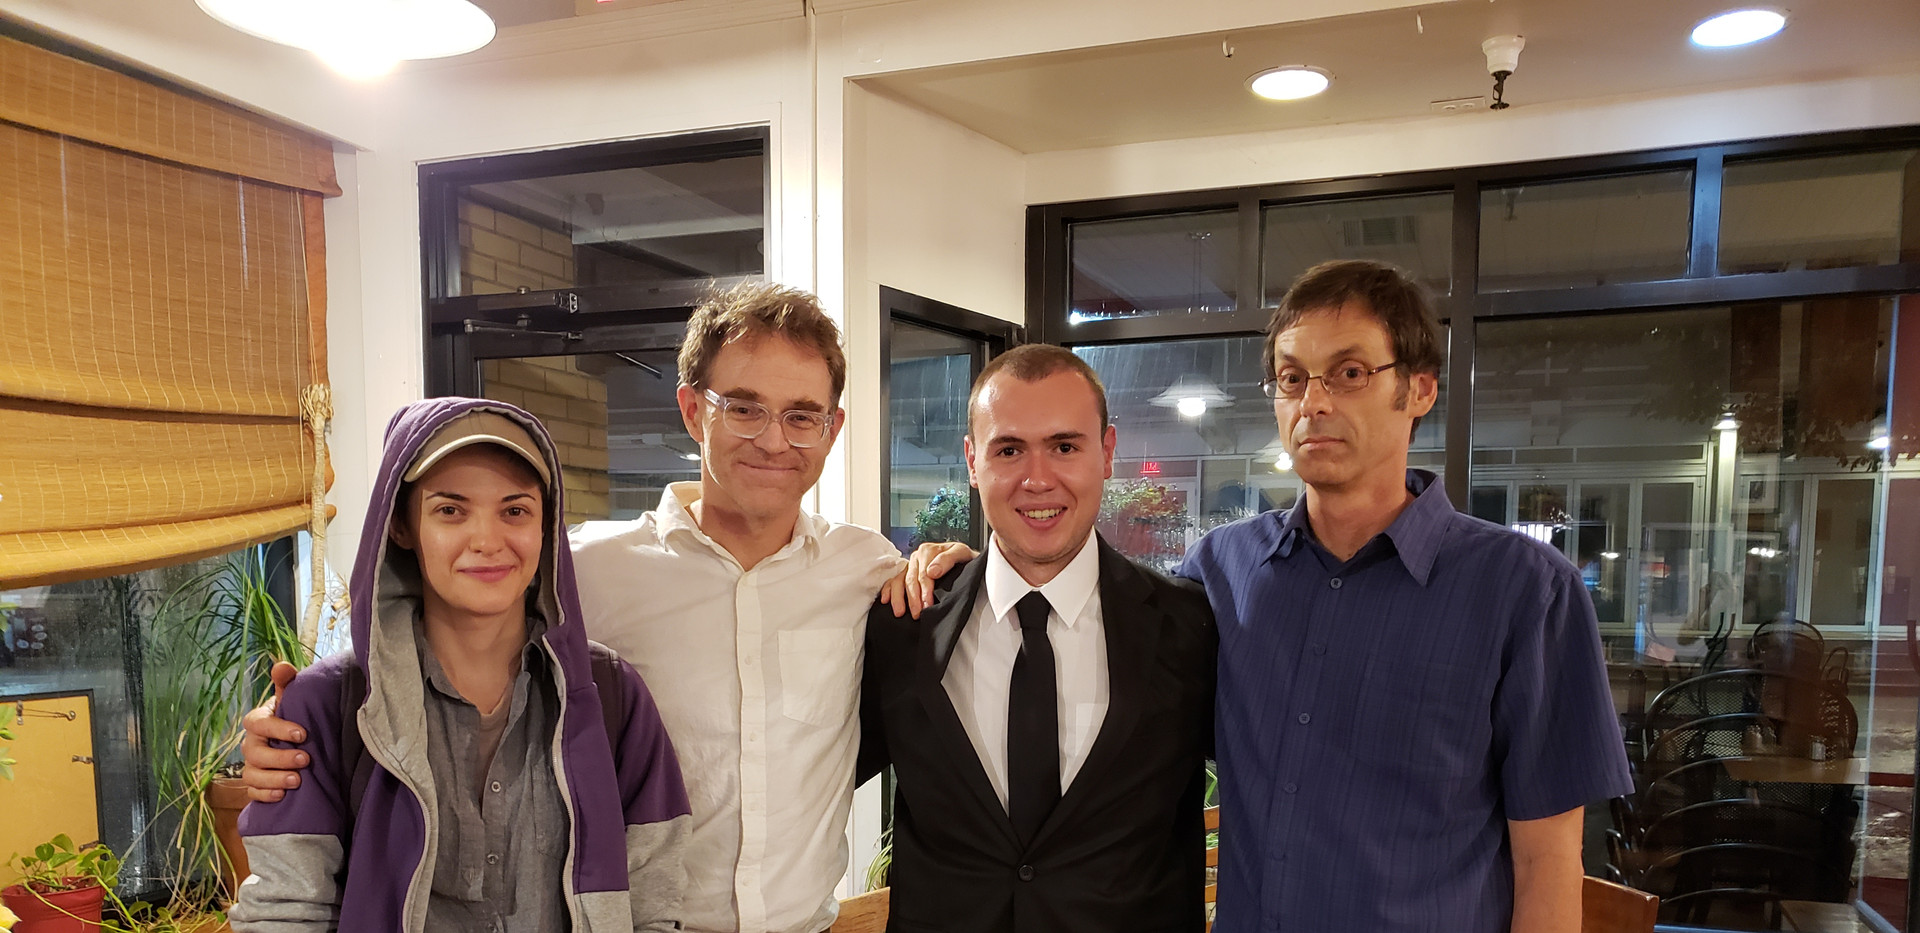 Enjoying the post-show reception after the 2018 Progeny Short Film Festival with Virginia Tech Cinema Faculty. From left to right, Laura Iancu, Charles Dye, W. Trent Welstead, and Karl Precoda.